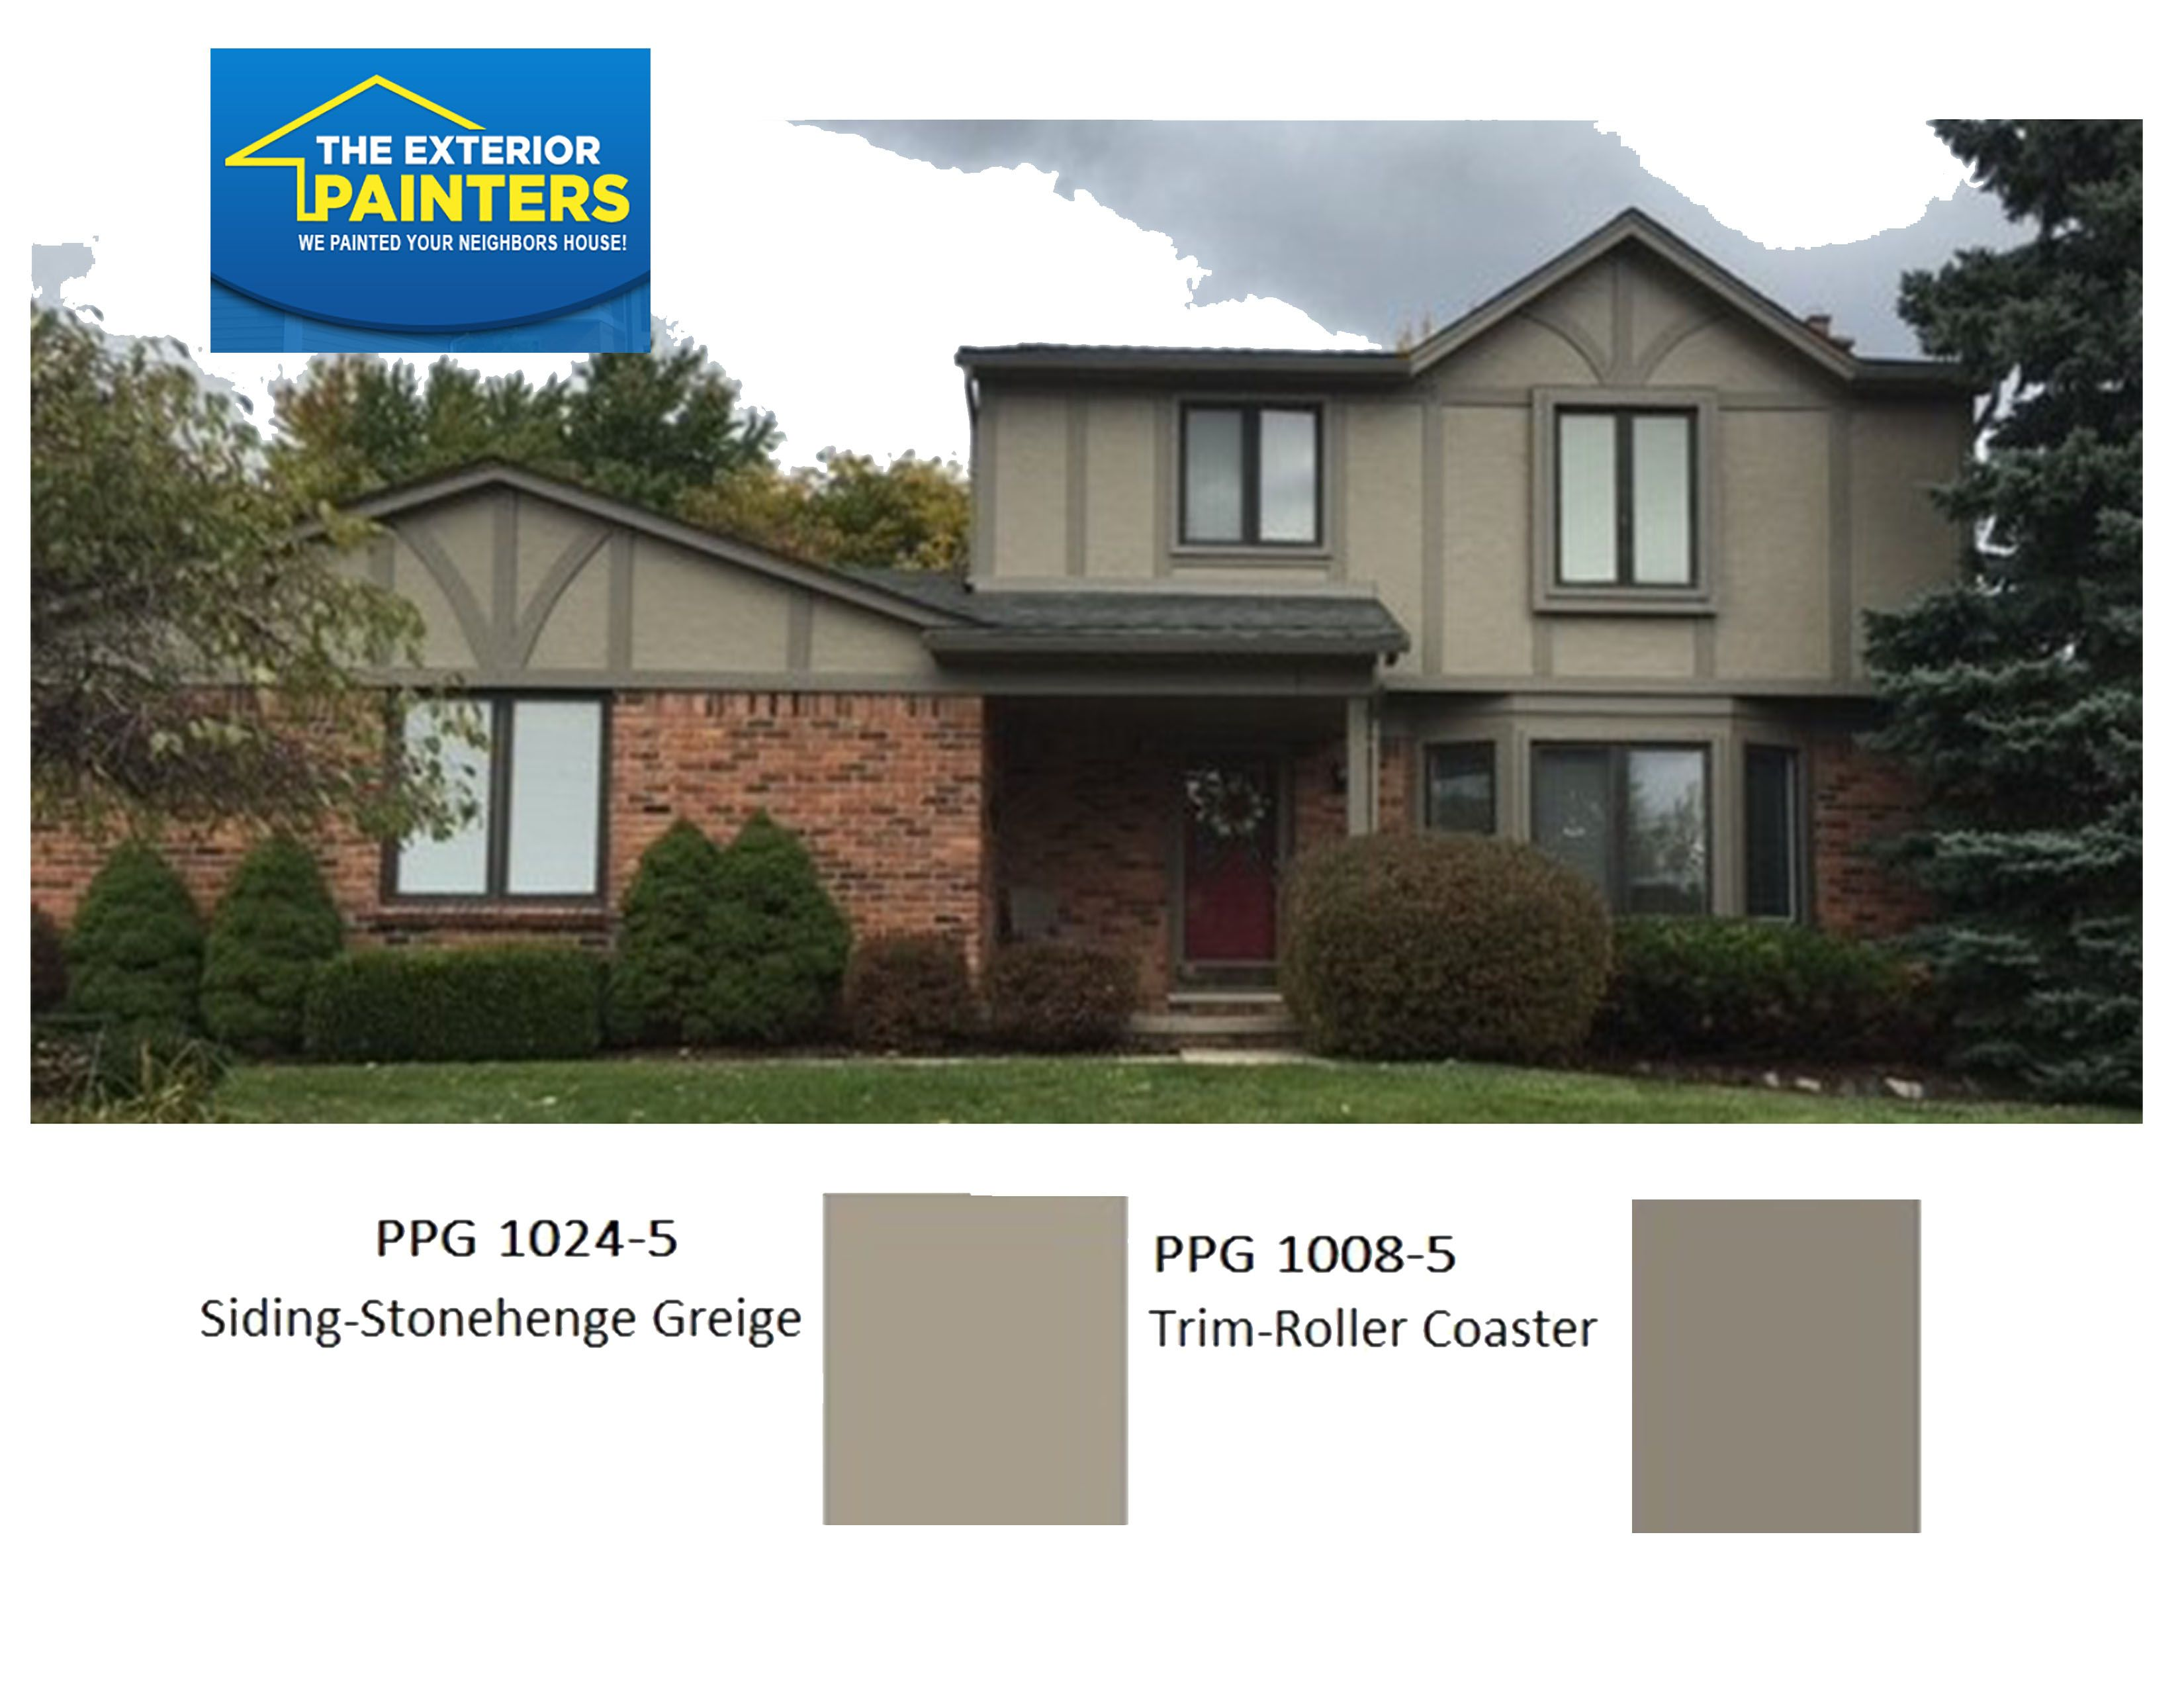 Ppg 1024 5 stonehenge greige for the stucco ppg 1008 5 - Best roller for exterior painting ...